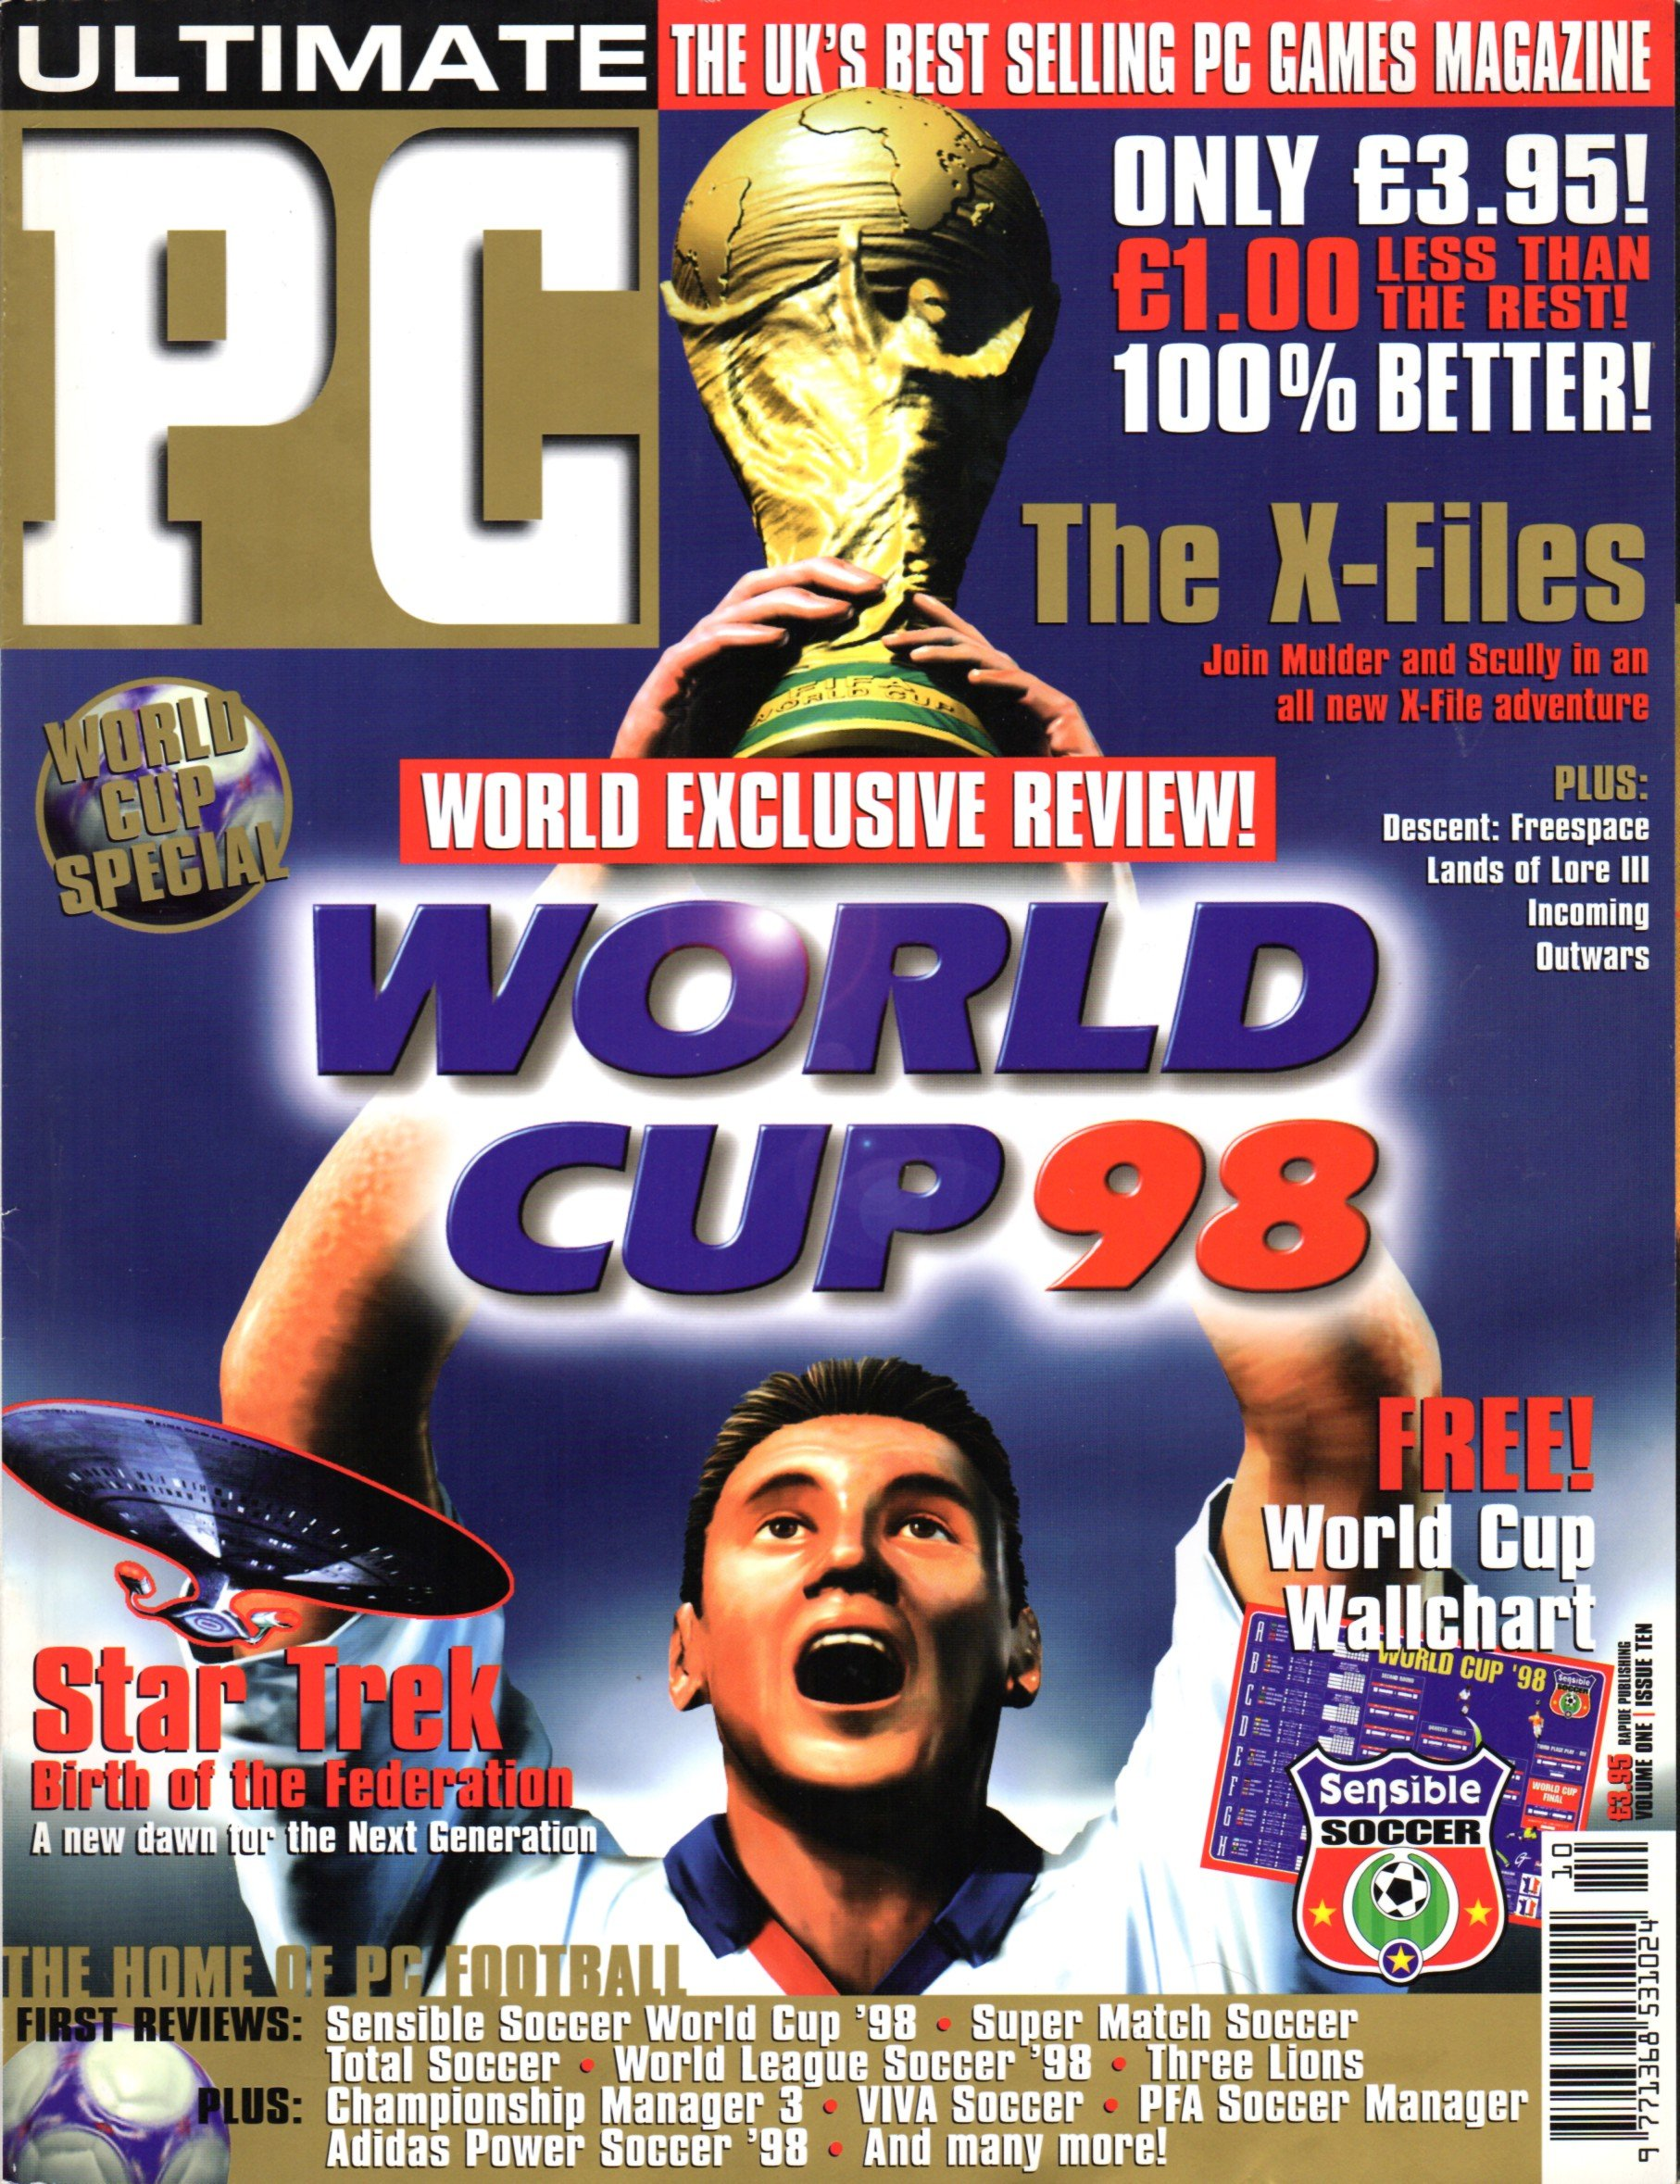 Ultimate PC Volume 1 Issue 10 (June 1998)